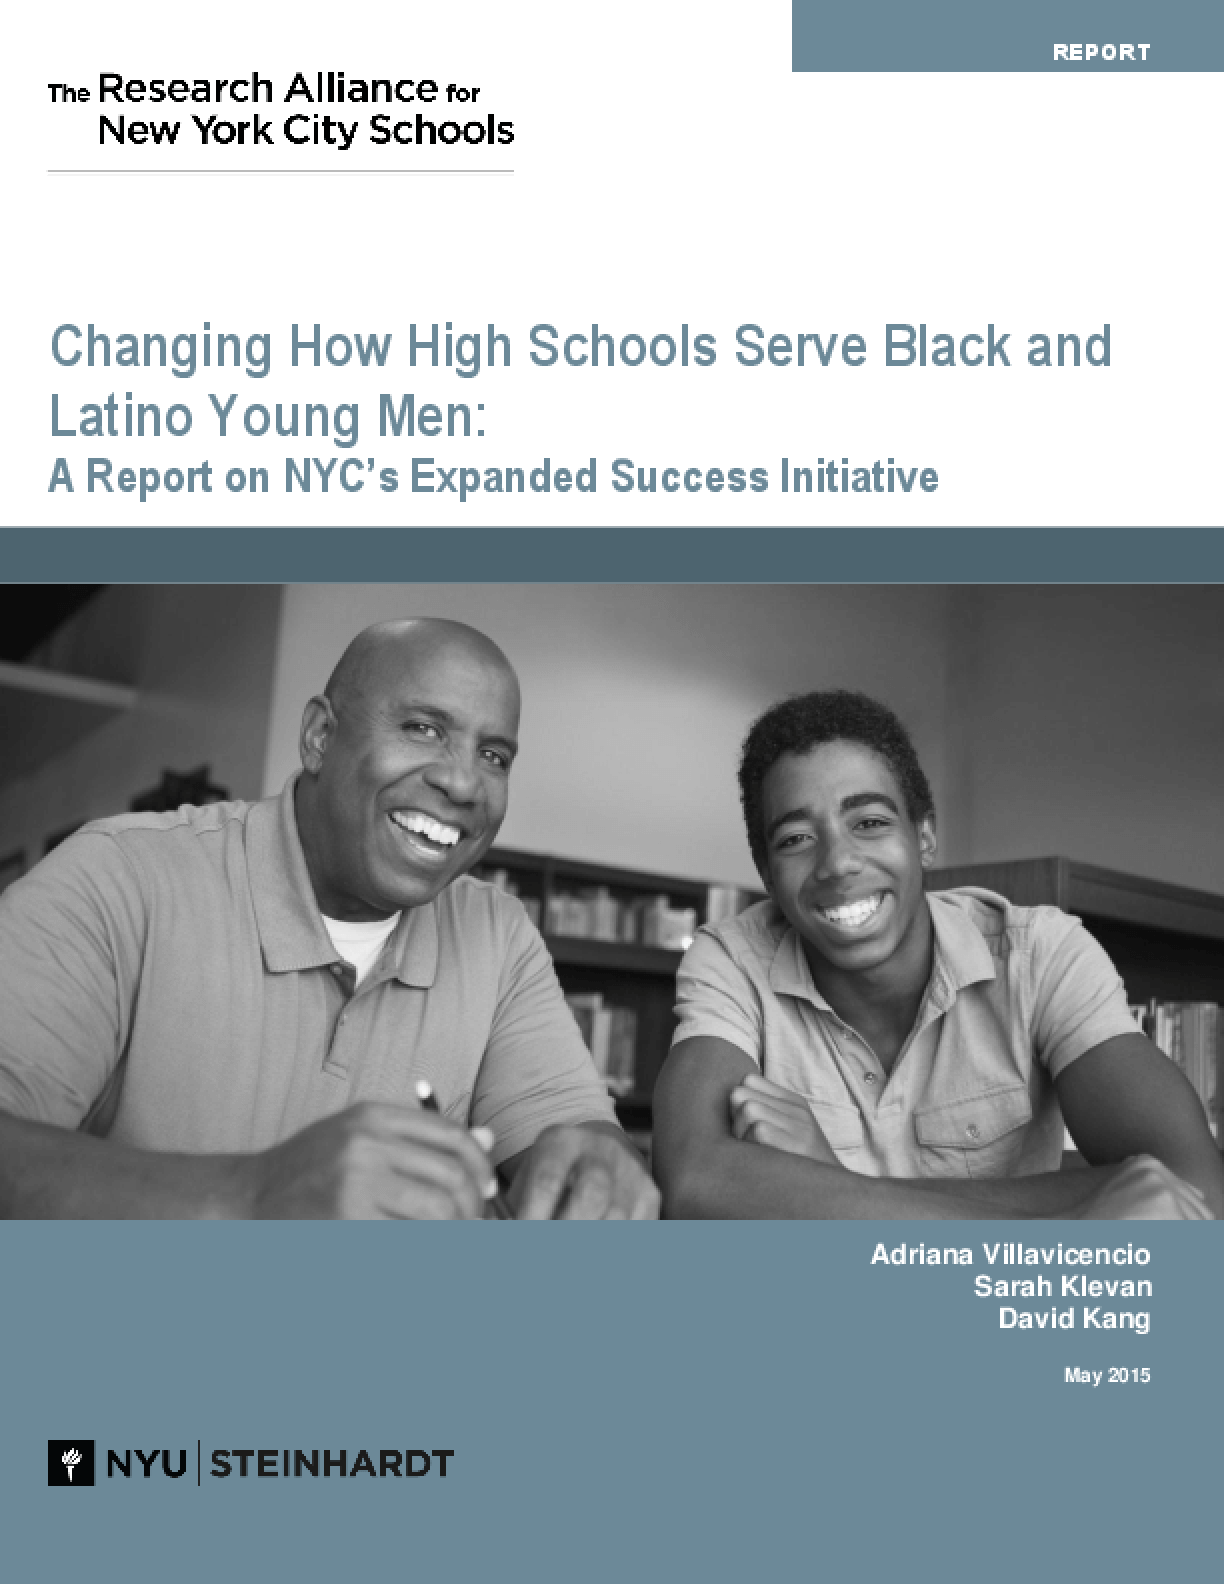 Changing How High Schools Serve Black and Latino Young Men: A Report on New York City's Expanded Success Initiative